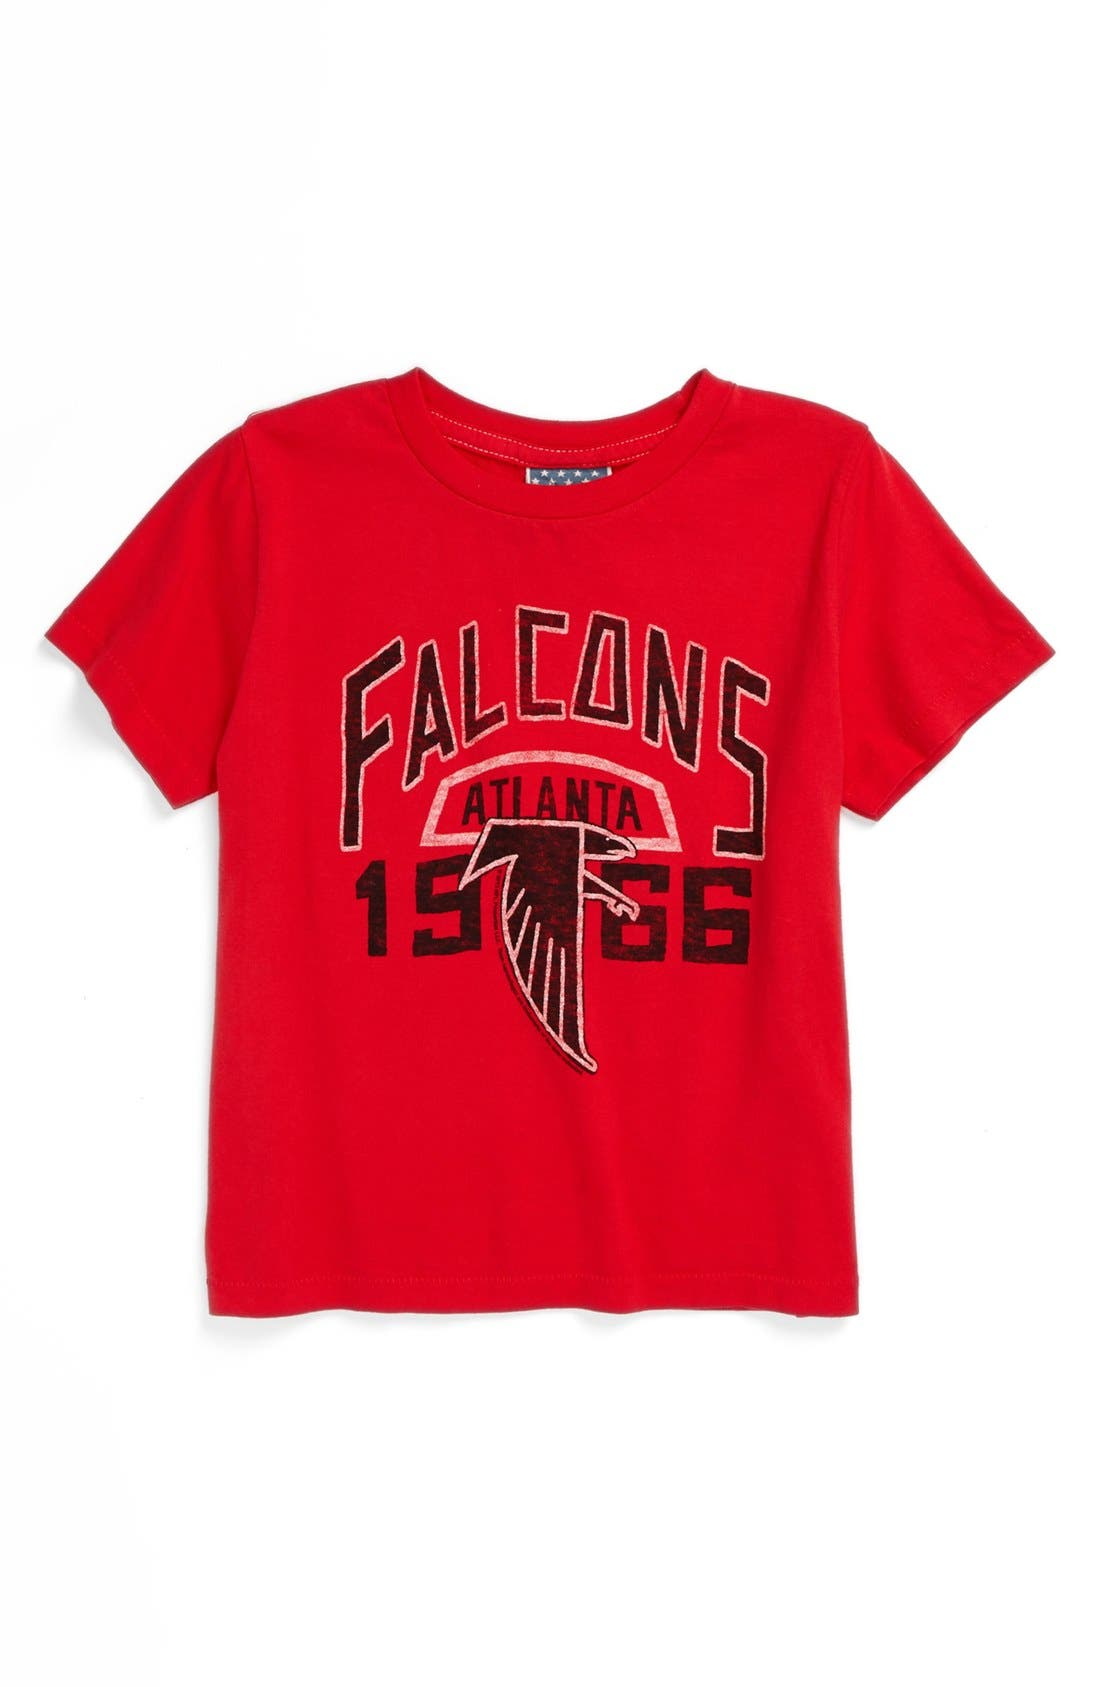 Alternate Image 1 Selected - Junk Food 'Atlanta Falcons' T-Shirt (Toddler Boys)